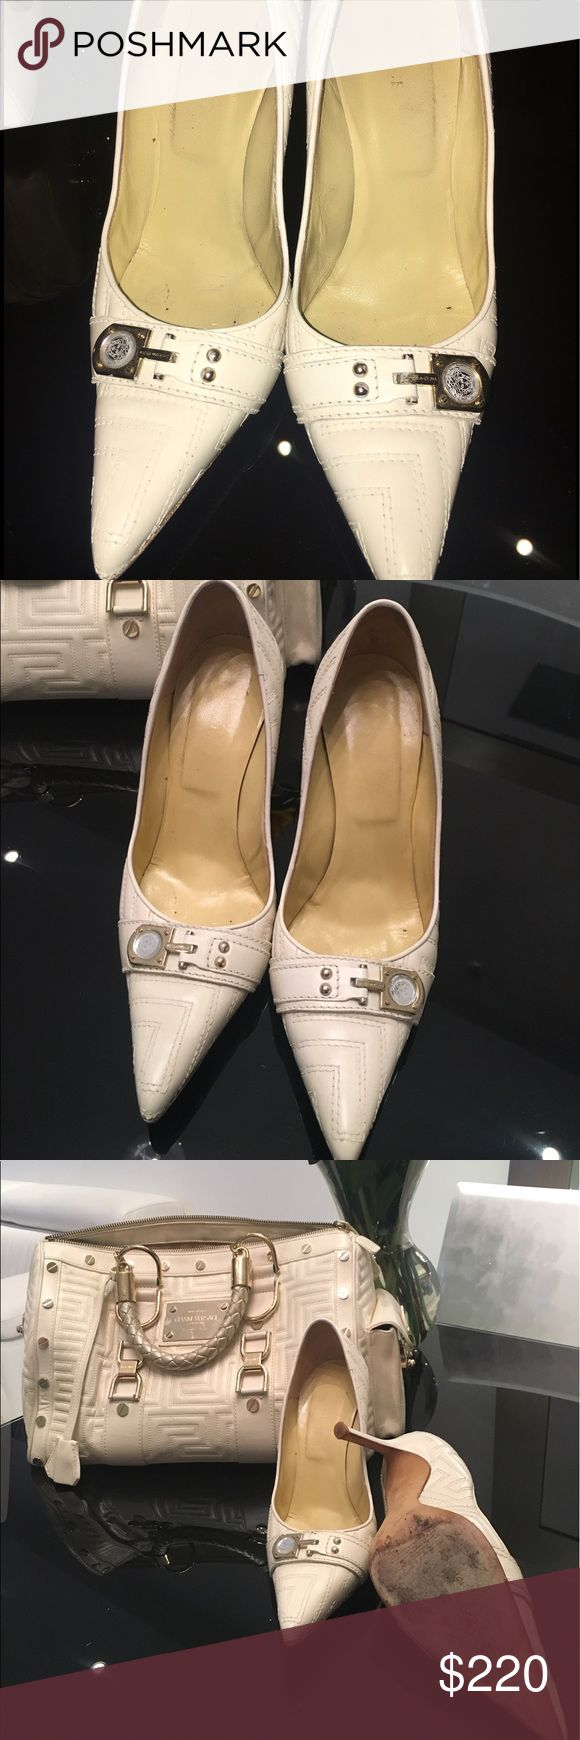 Authentic Versace Couture Greca Quilt Pumps Gianni Versace Couture Ivory/ Cream Greca Quilt Pumps. Good pre-owned condition with minor wear and scuffs on the sole and interior sole. I also have the matching handbag for sale. Check out my closet for a discount when you buy both! Versace Shoes